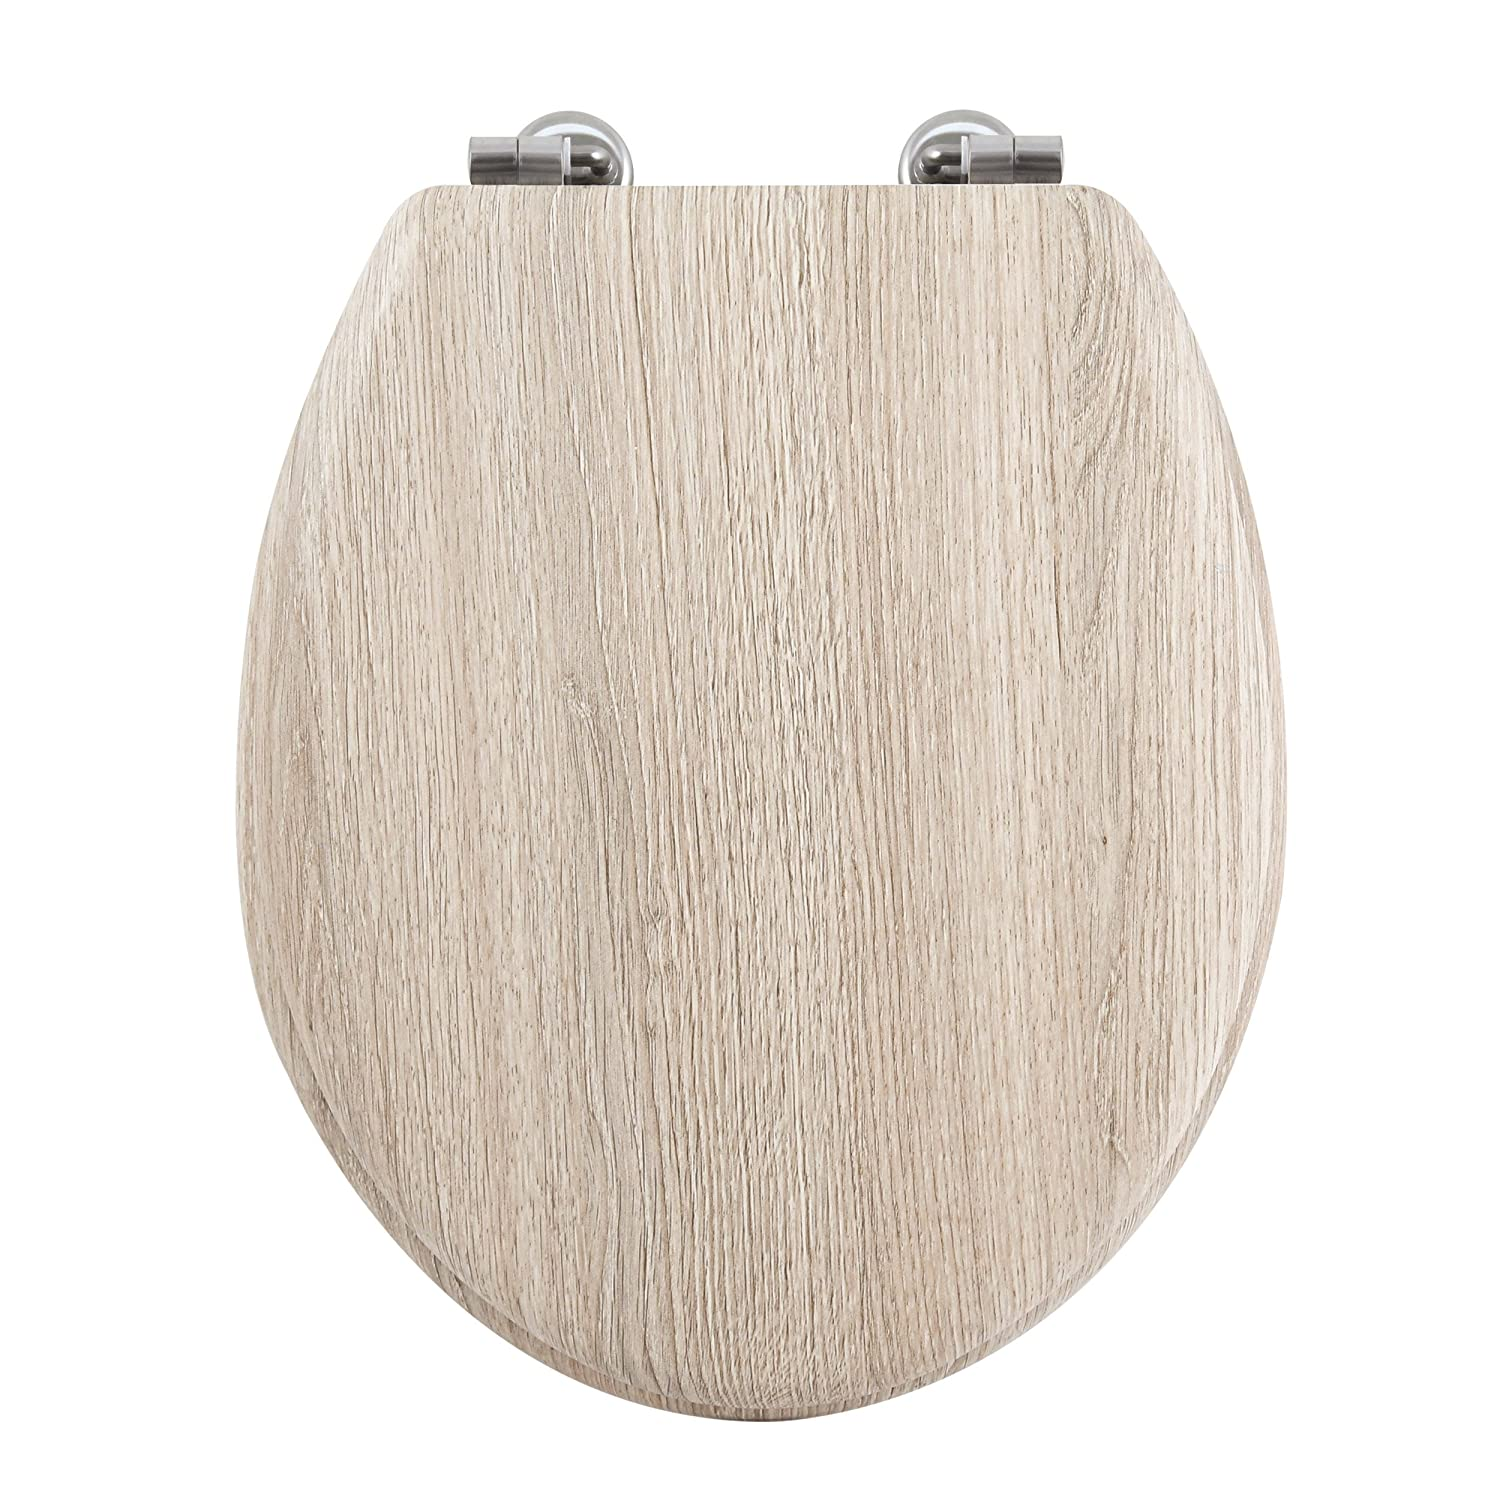 MSV Asiento WC Madera Gris 42.5x36.5x3 cm 71 Unidades